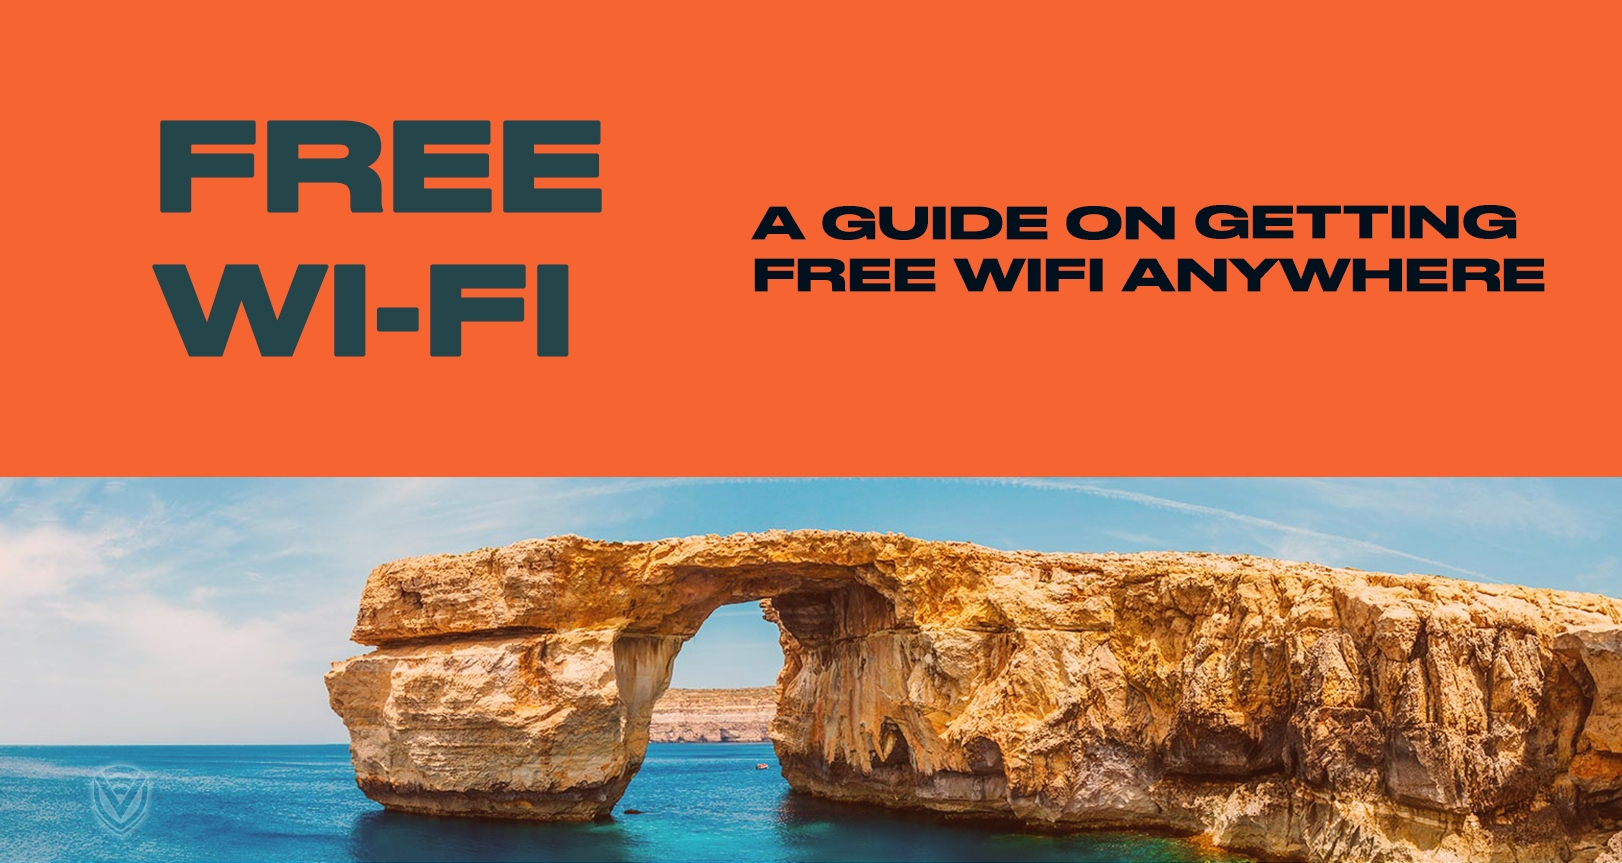 Here's How You can Get Free Wi-Fi Anywhere